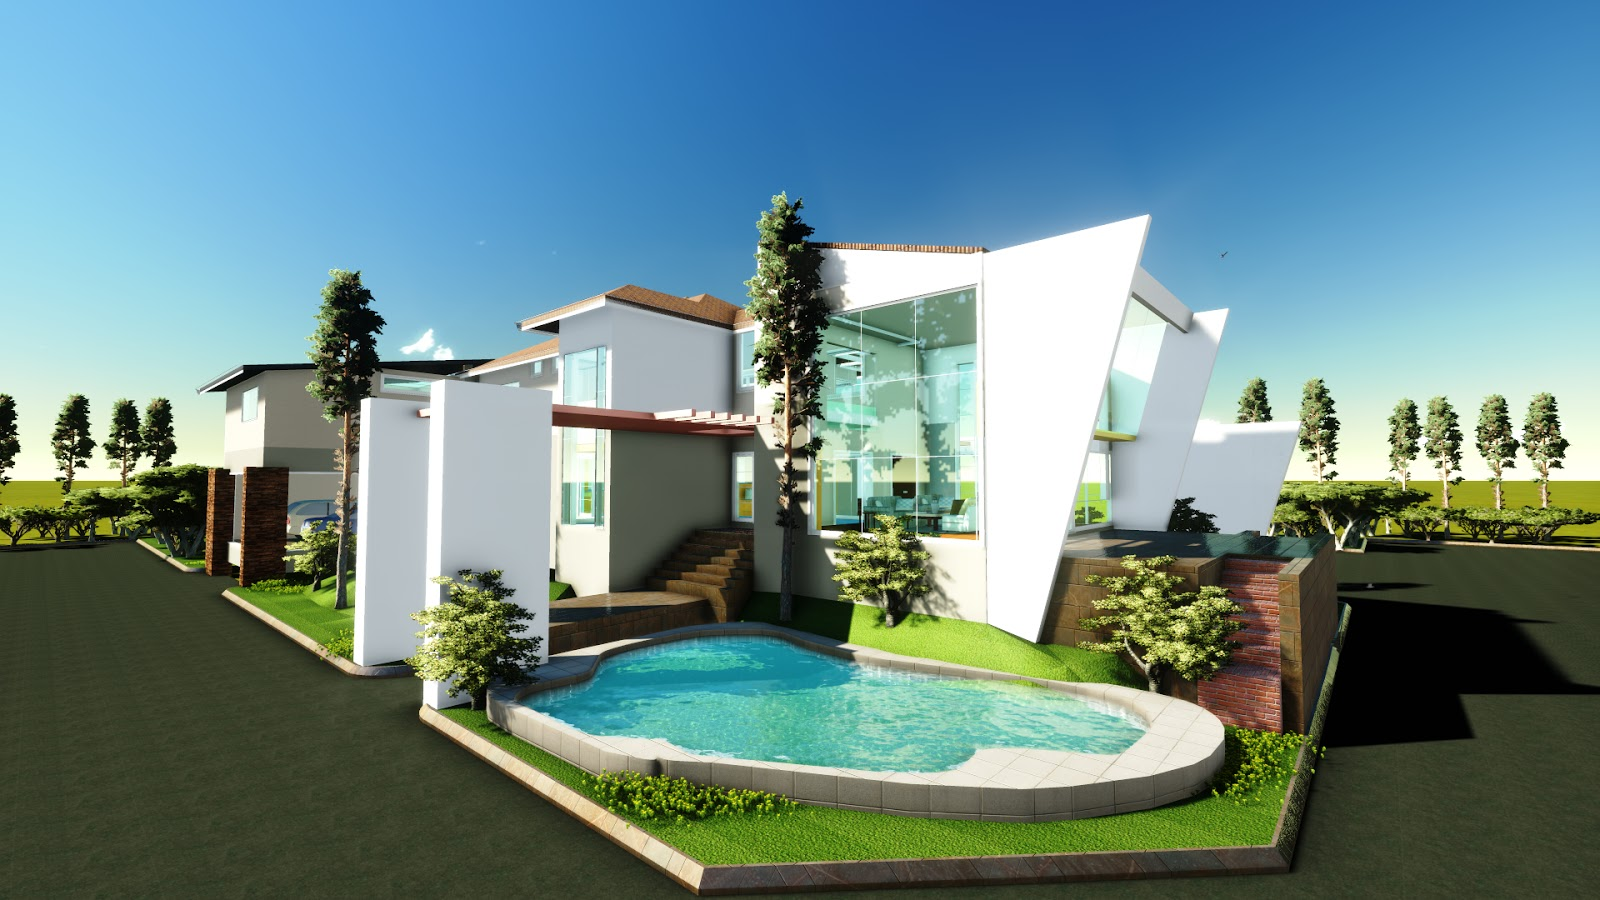 Model houses design in the philippines home design and style for House models in the philippines